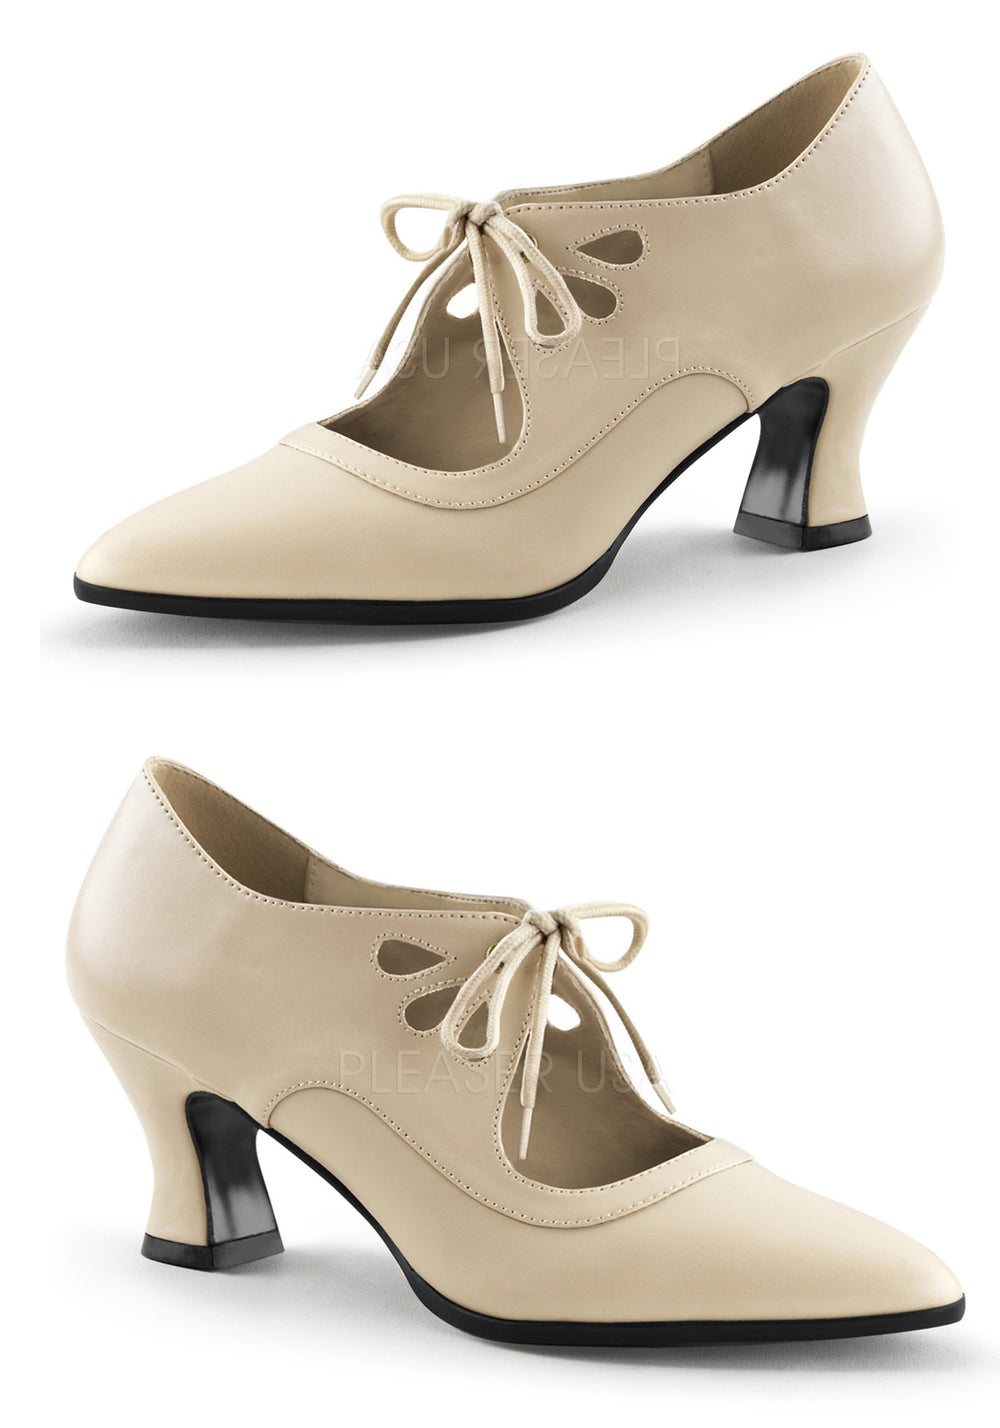 Cream Vintage Style Shoes